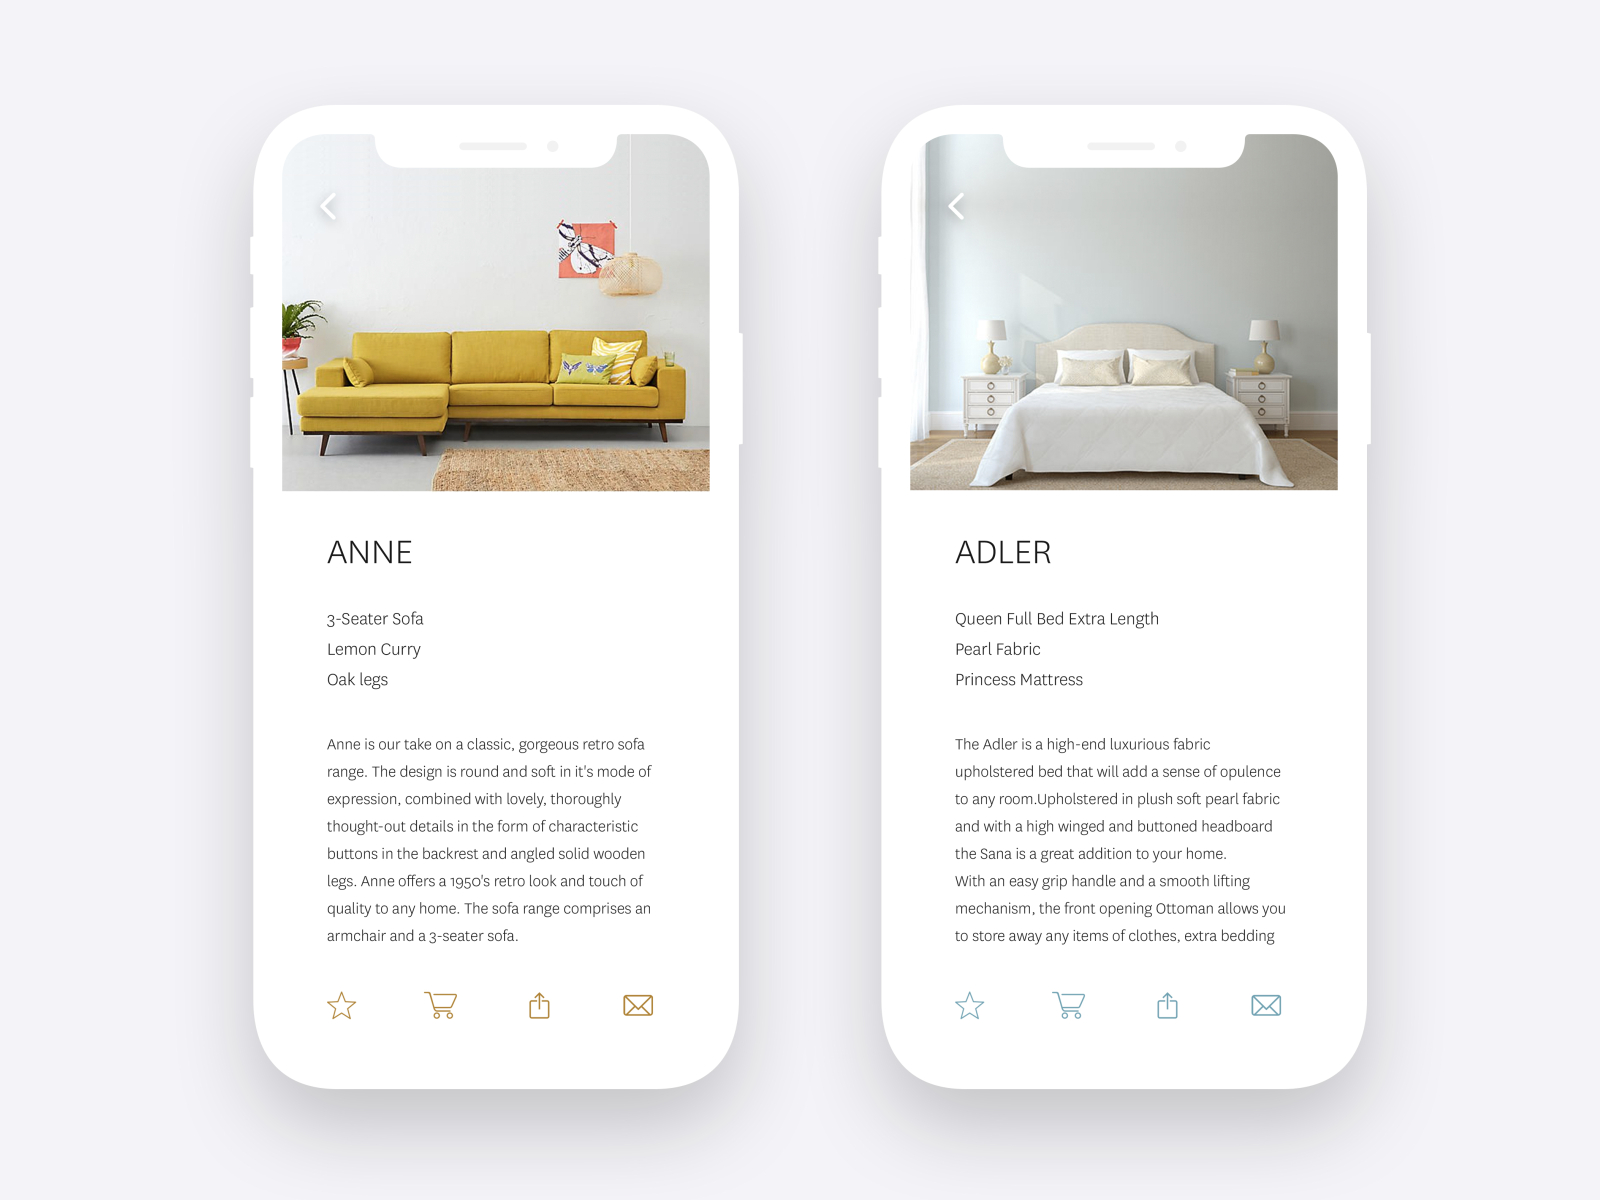 Admirable Furniture App By Genevieve Chang On Dribbble Andrewgaddart Wooden Chair Designs For Living Room Andrewgaddartcom